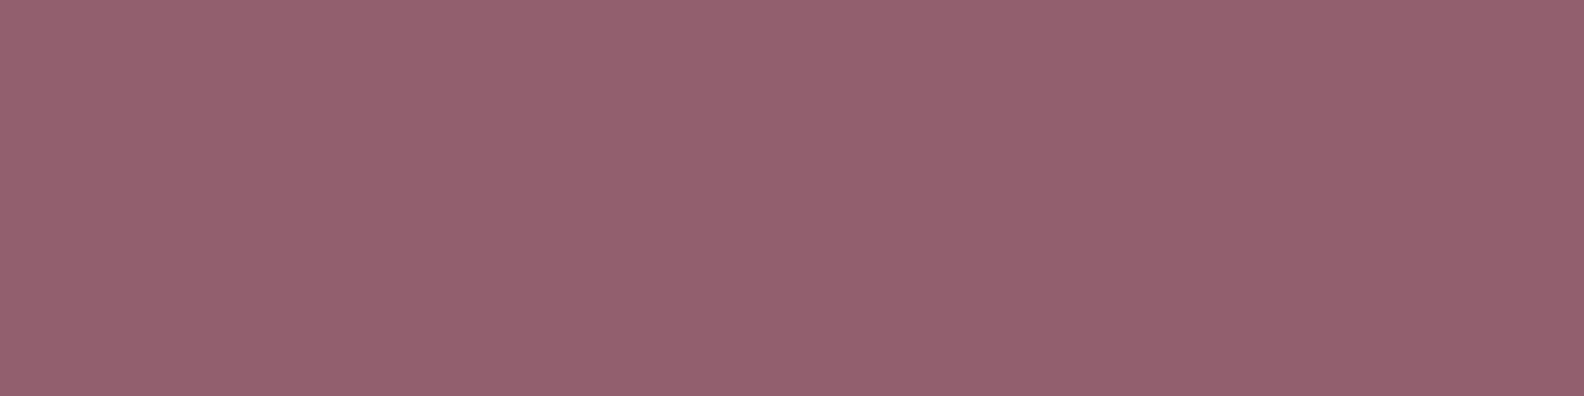 1584x396 Mauve Taupe Solid Color Background